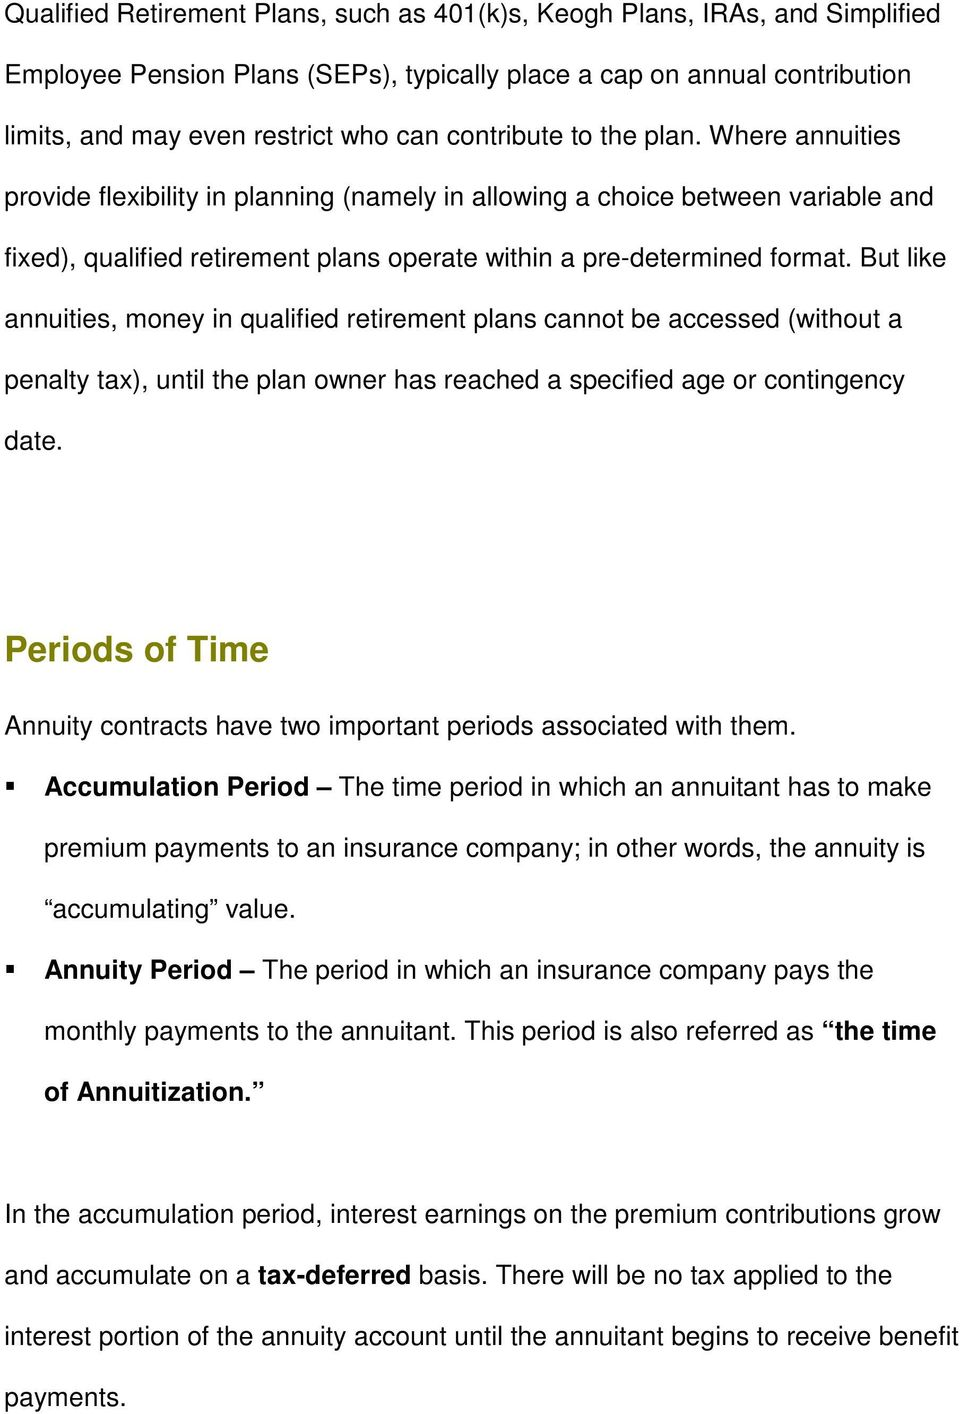 But like annuities, money in qualified retirement plans cannot be accessed (without a penalty tax), until the plan owner has reached a specified age or contingency date.